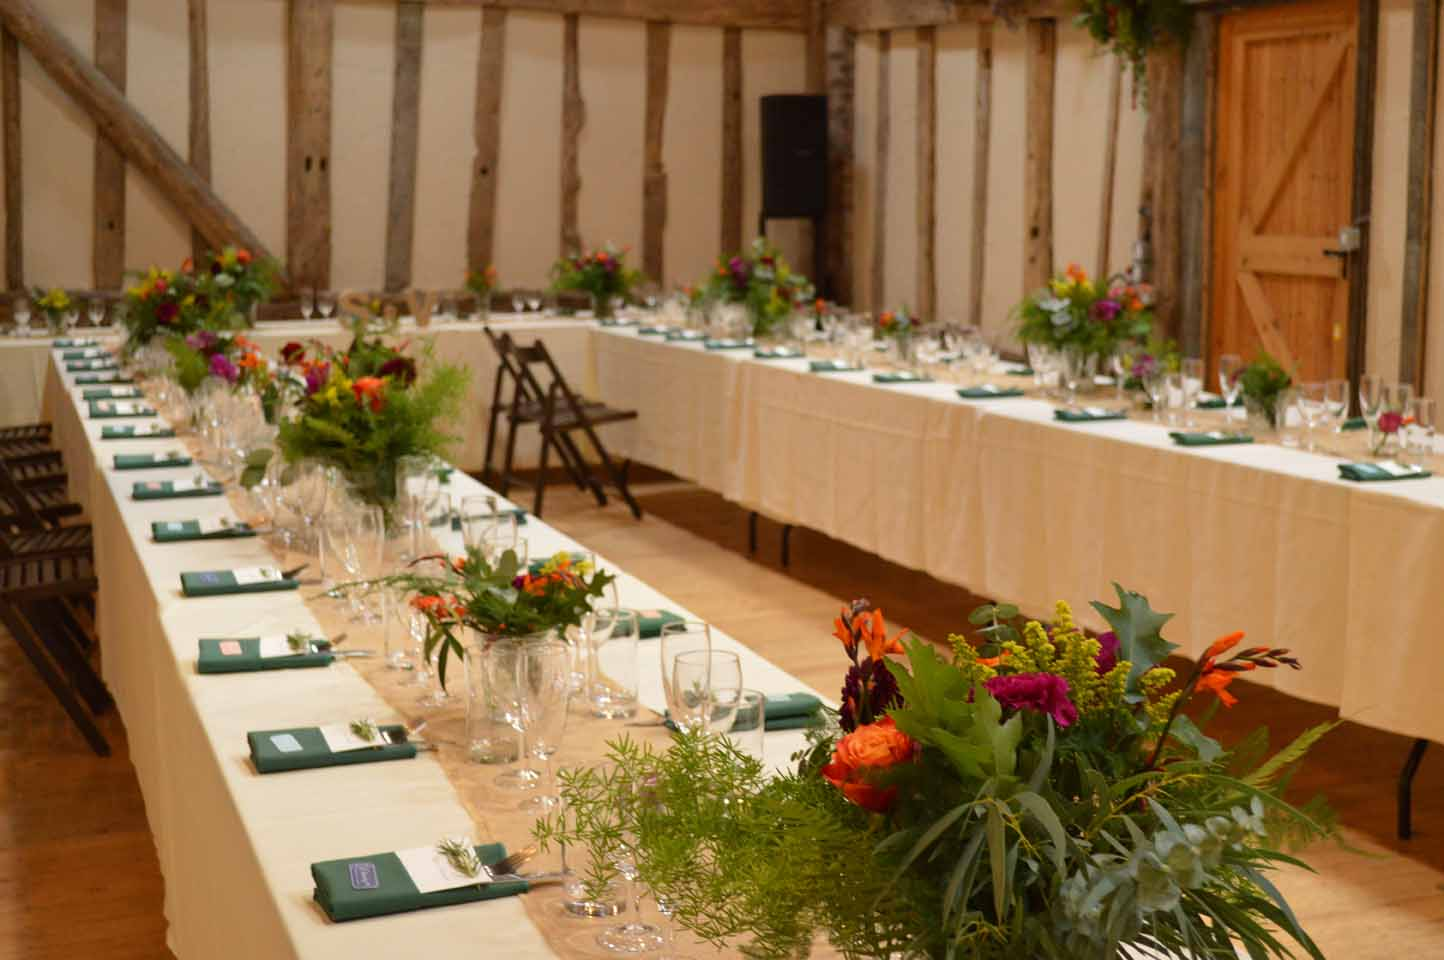 patricks barn wedding chiddinglye table flowers